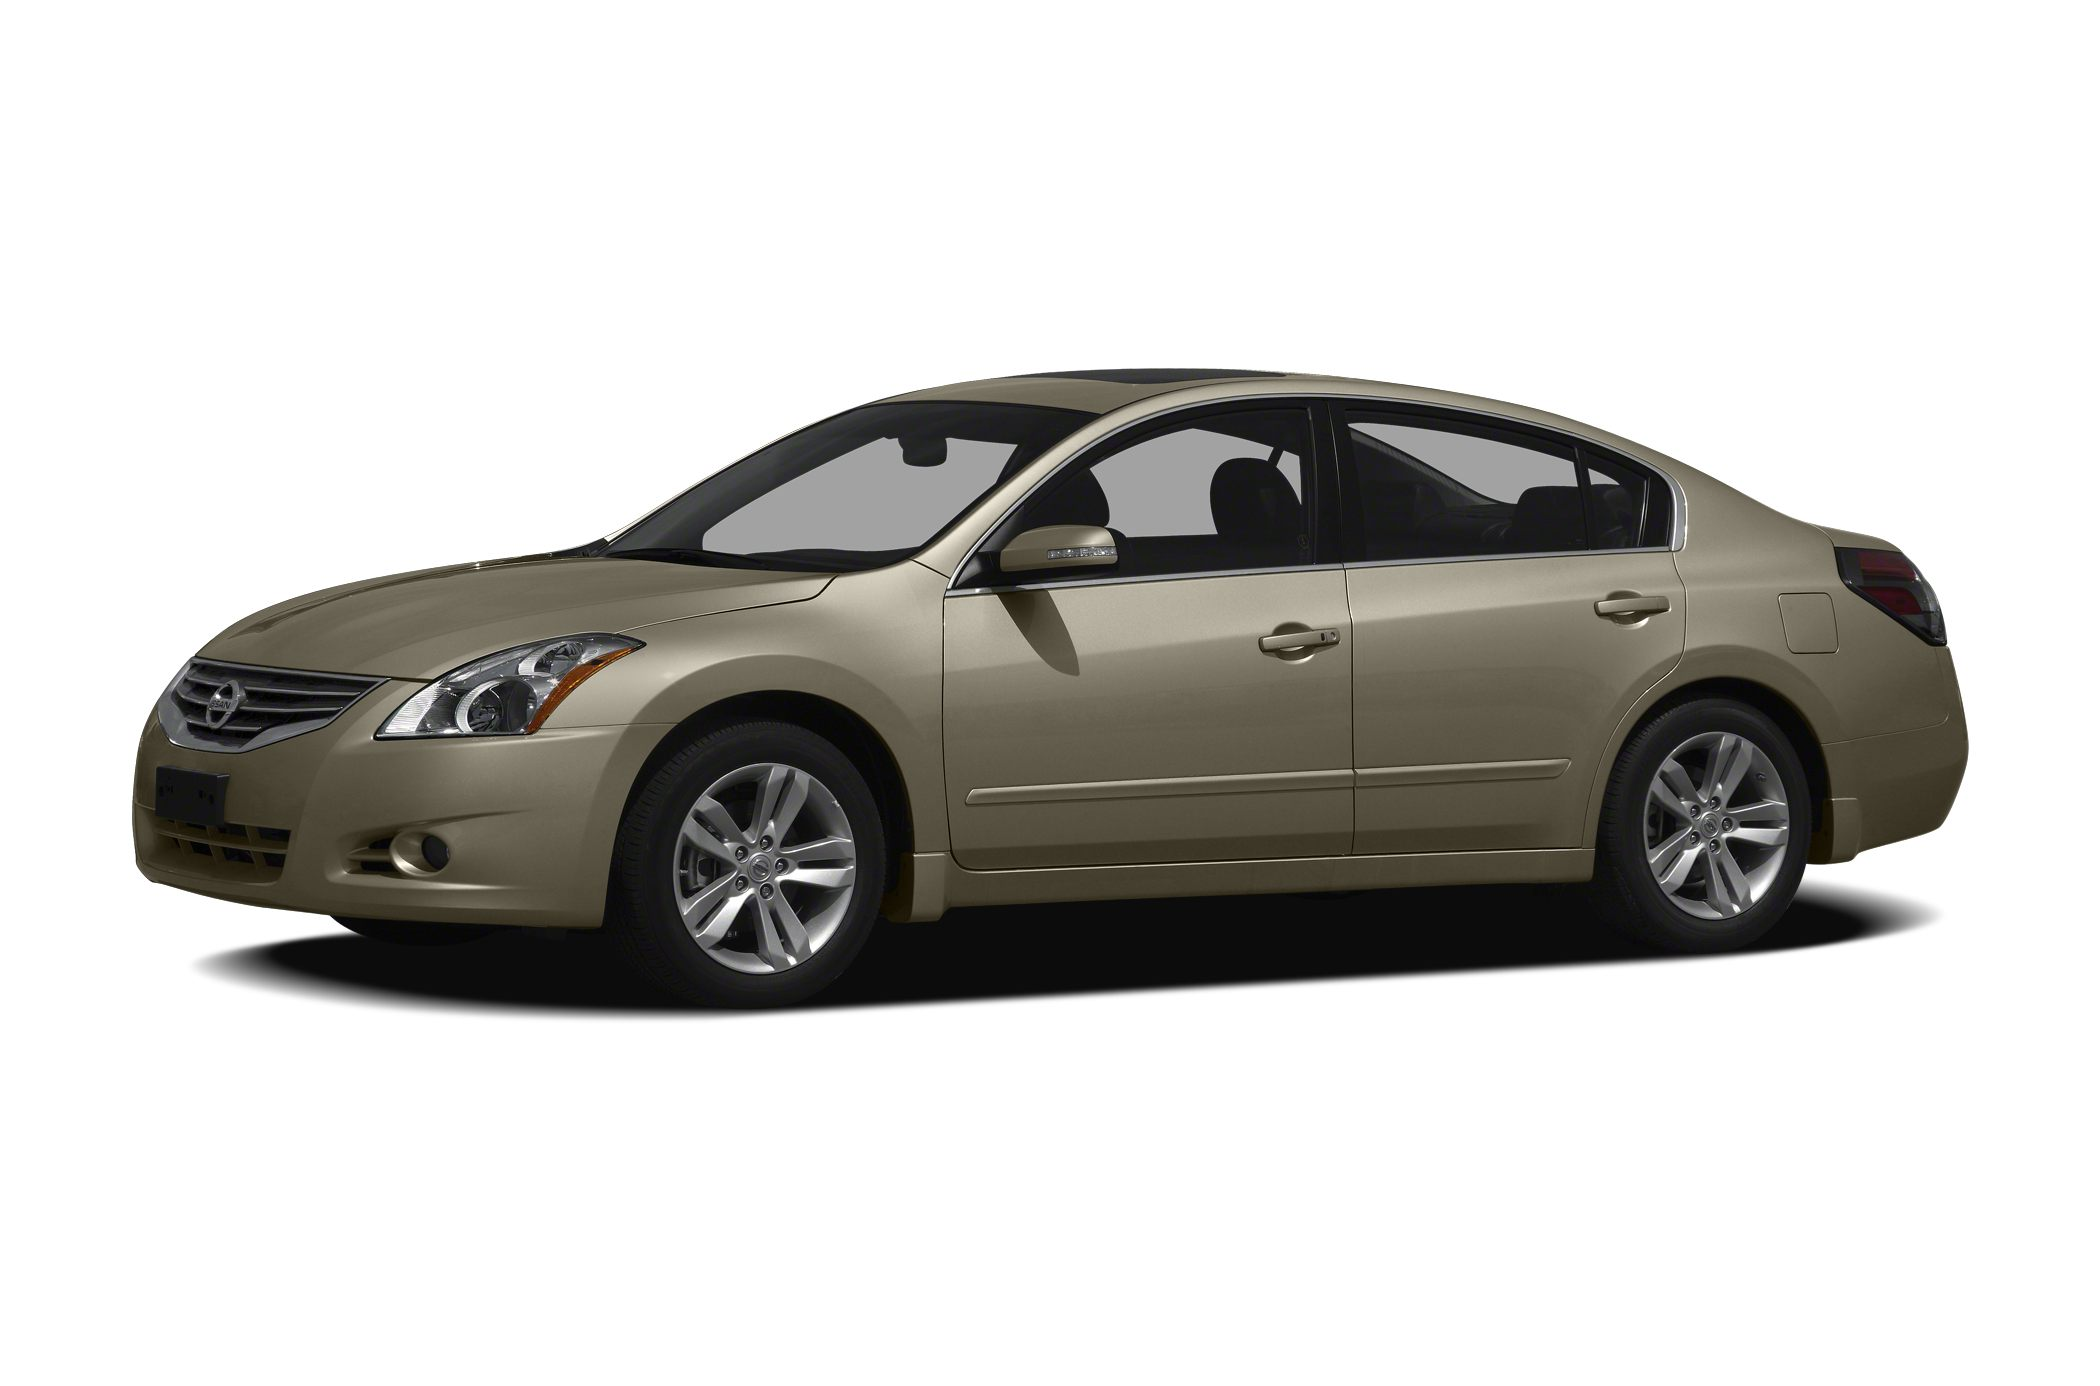 2012 Nissan Altima 2.5 S Sedan for sale in Daphne for $12,990 with 71,122 miles